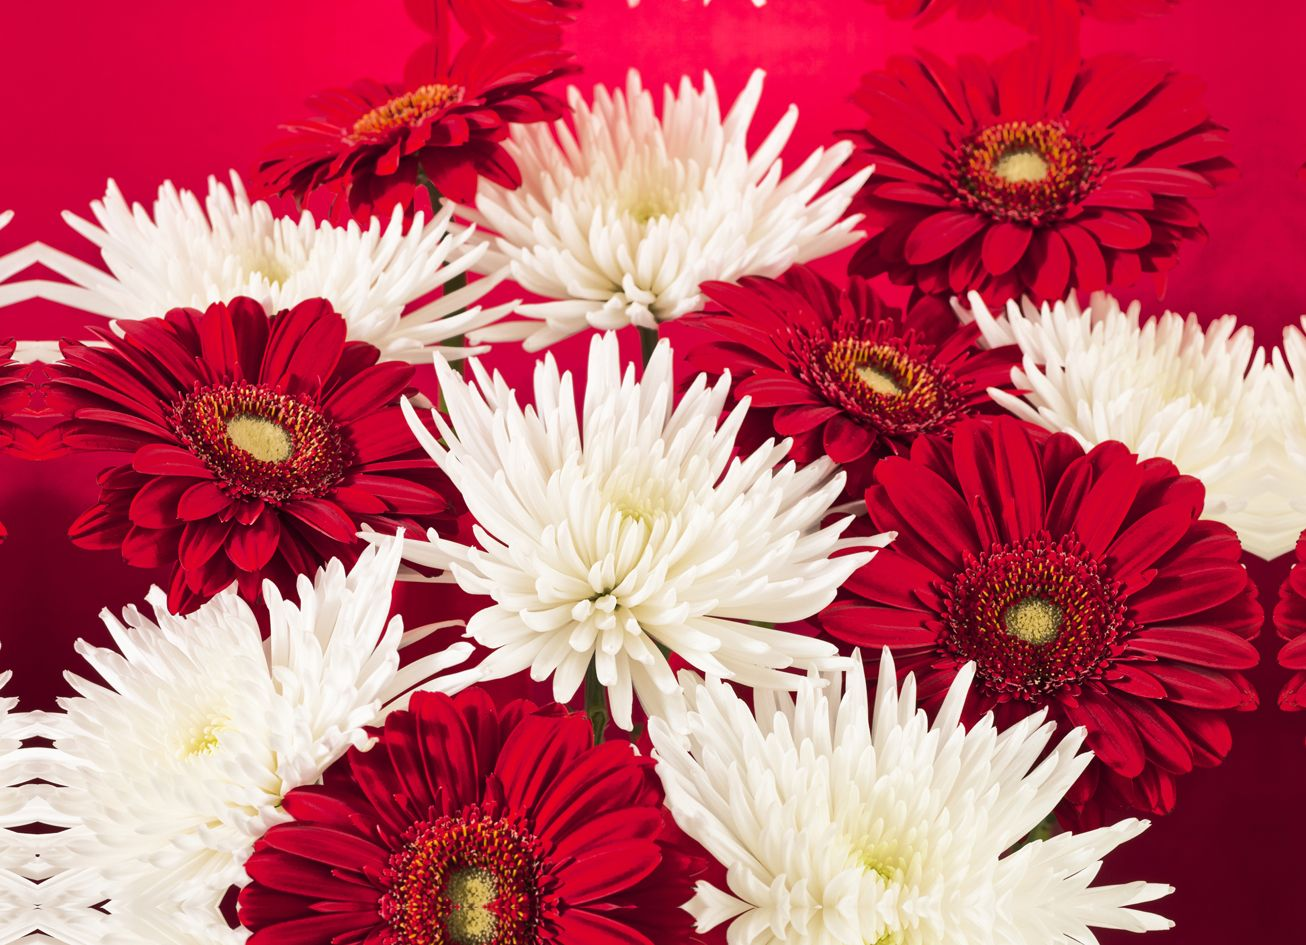 Wonderful display from chrysanthemums direct chrysanthemums red white chrysanthemums triptych by arthouse wallpaper direct mightylinksfo